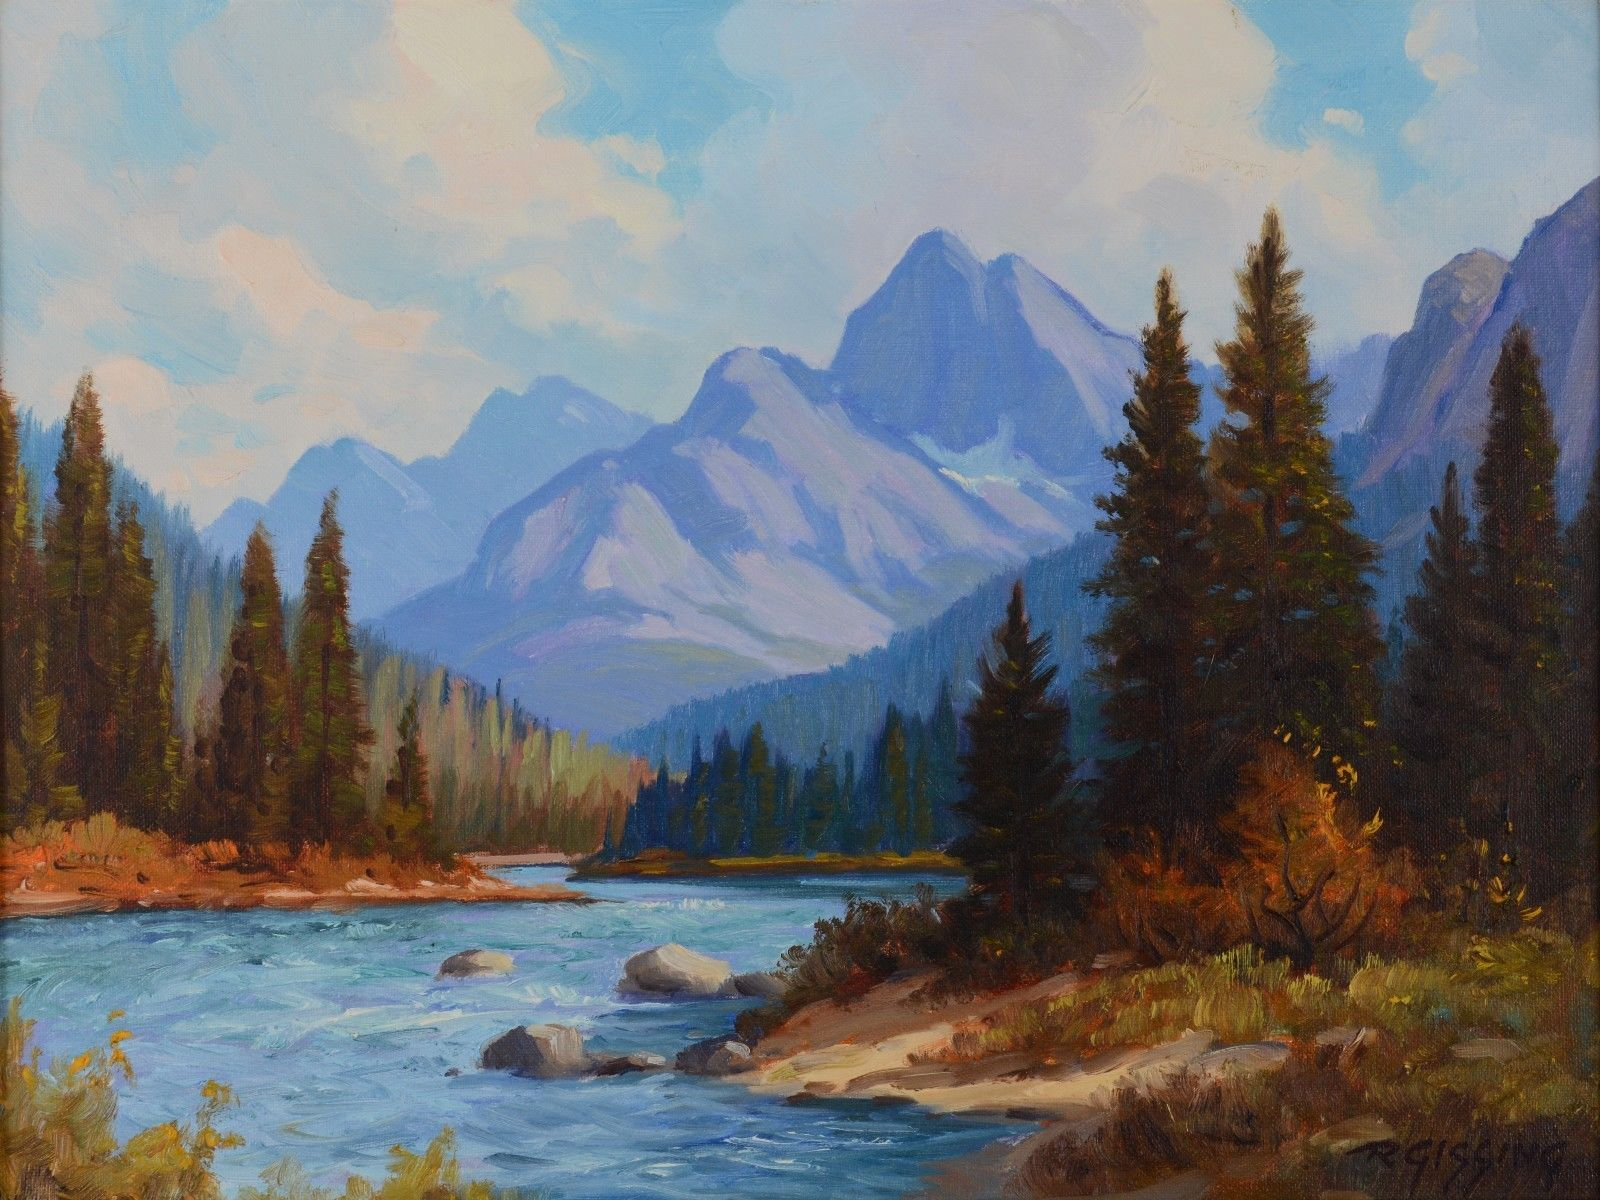 Details About Roland Gissing 1895 1967 Asa Oil Painting Mountain Lake Landscape Canadian In 2020 Mountain Landscape Painting Mountain Paintings Landscape Oil Paintings Mountain